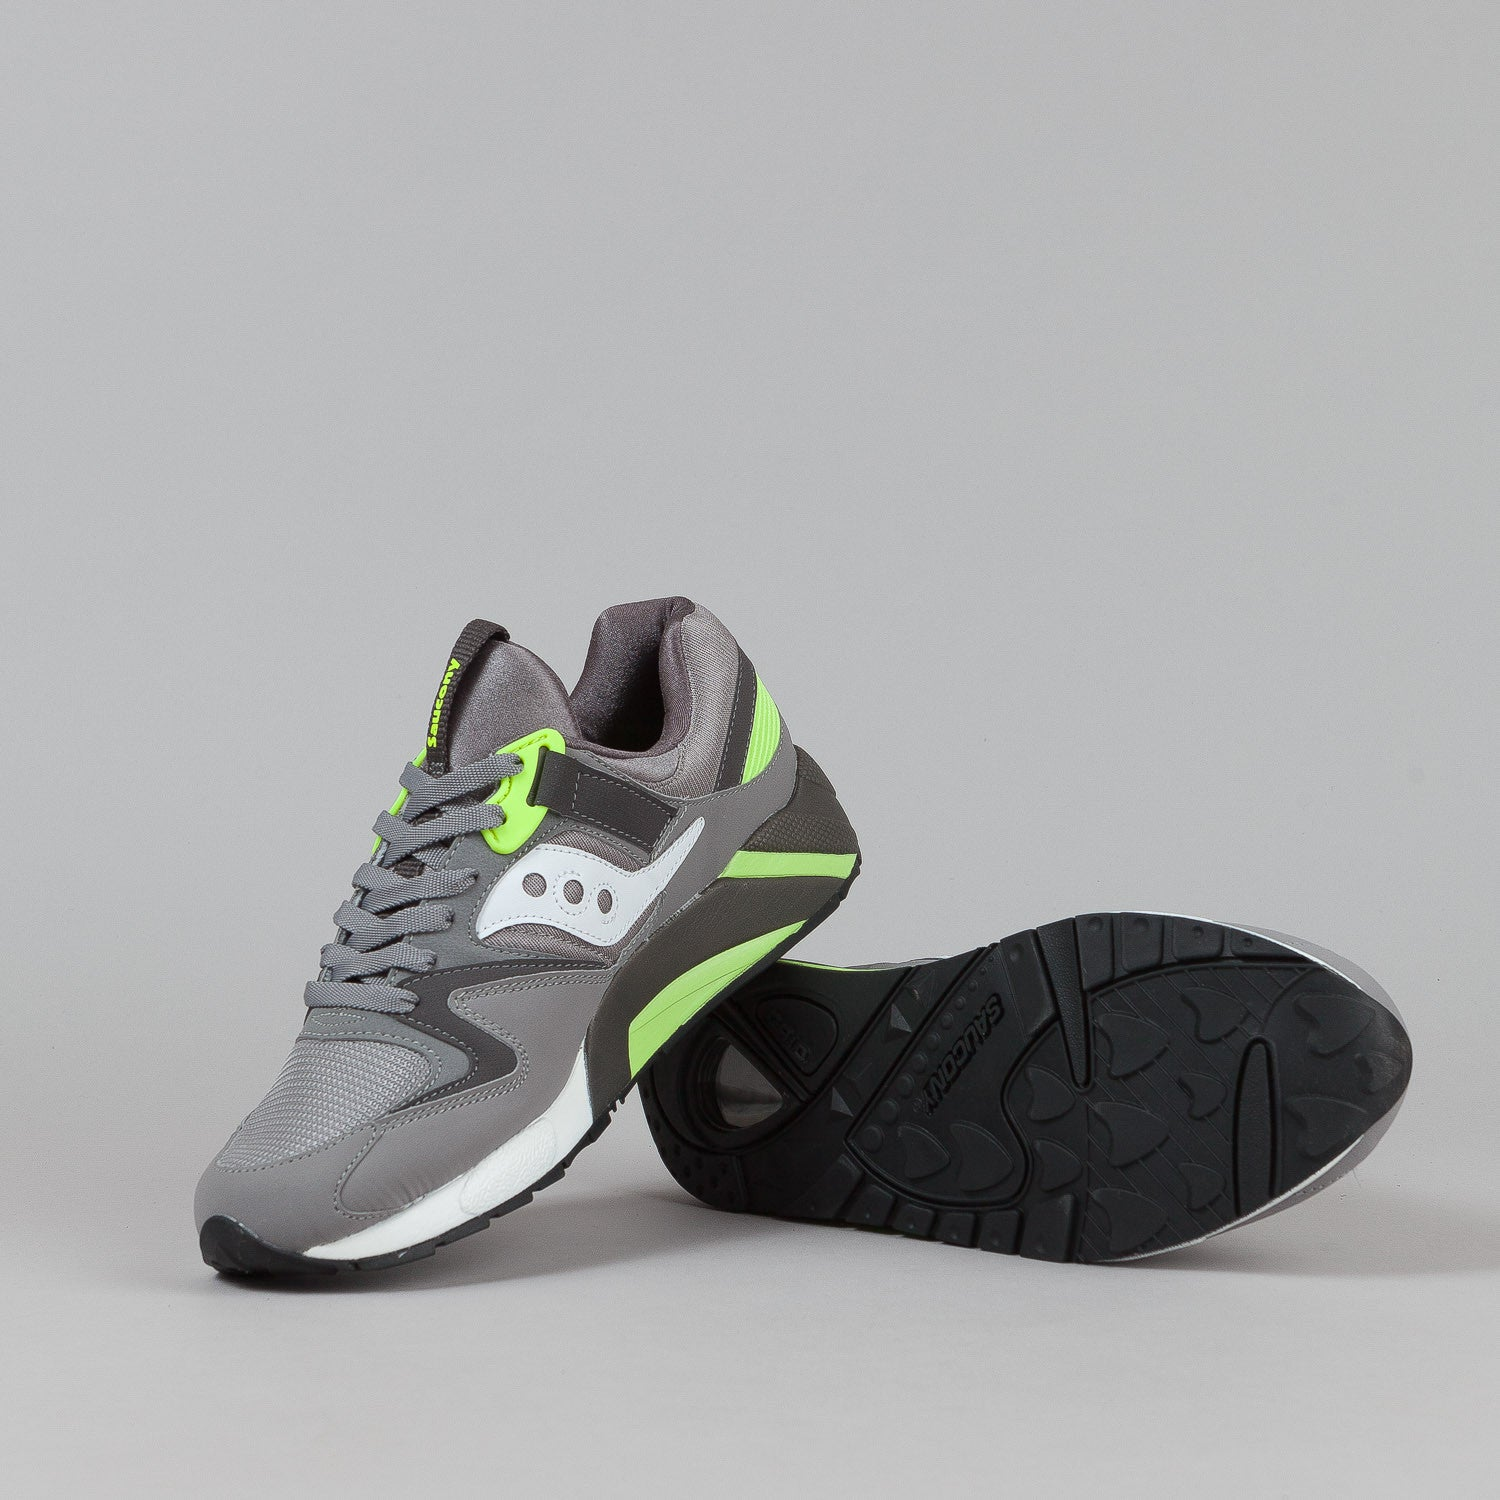 Saucony Grid 9000 Shoes - Grey / Citron